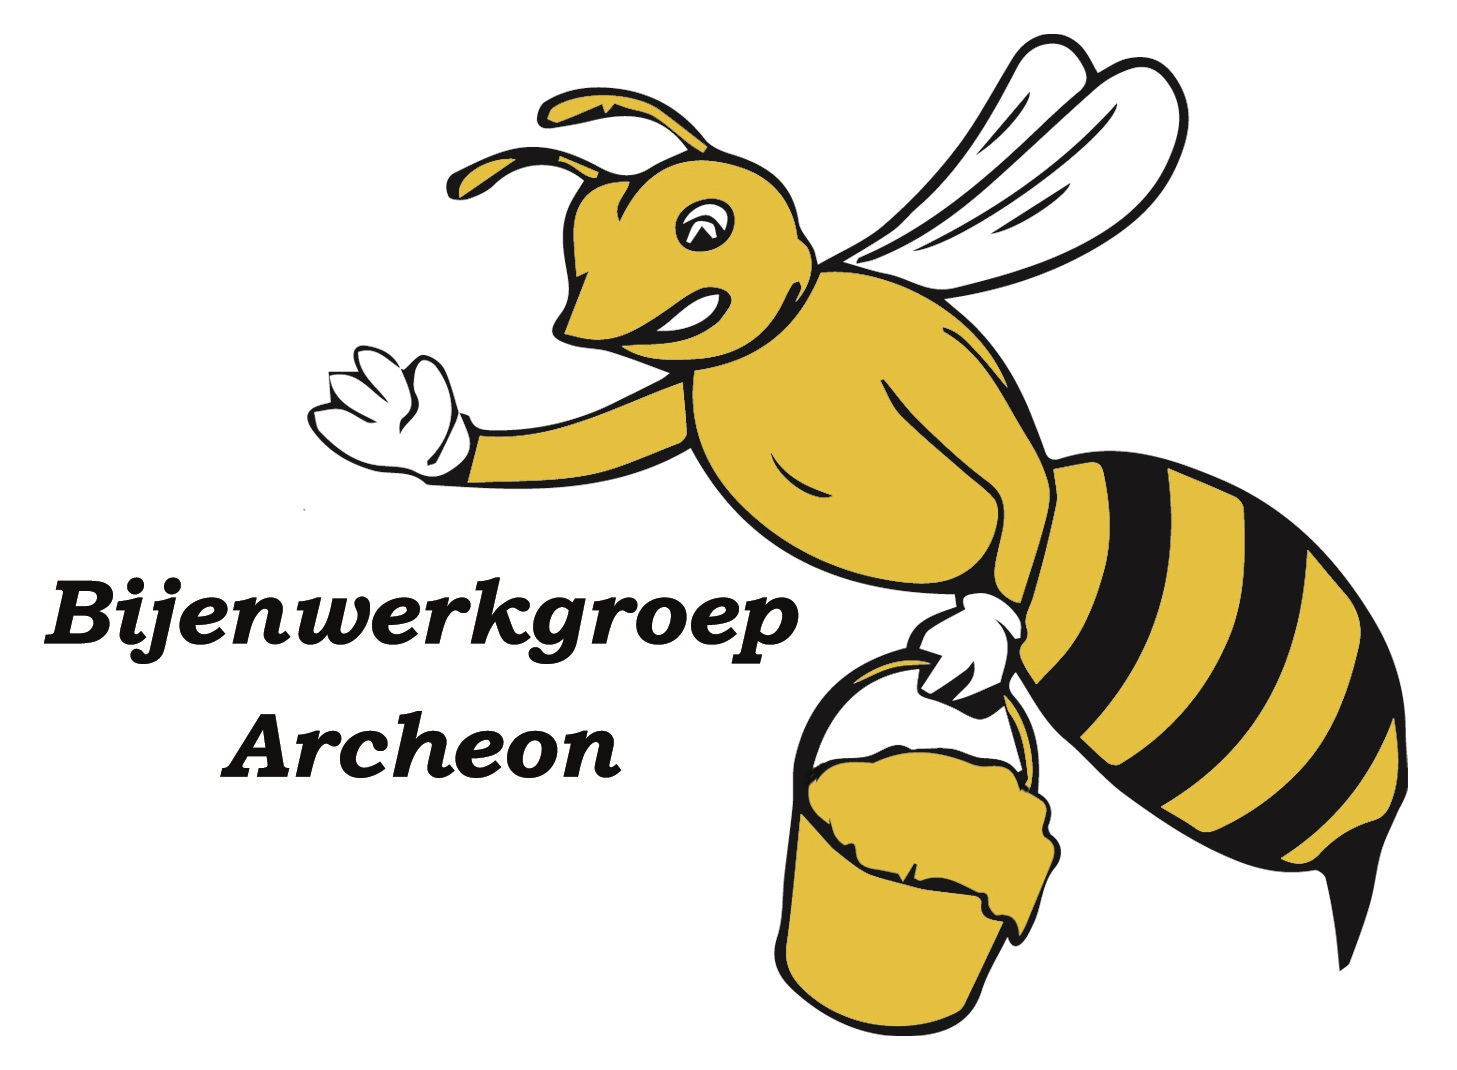 bijenwerkgroep archeon (1).jpg